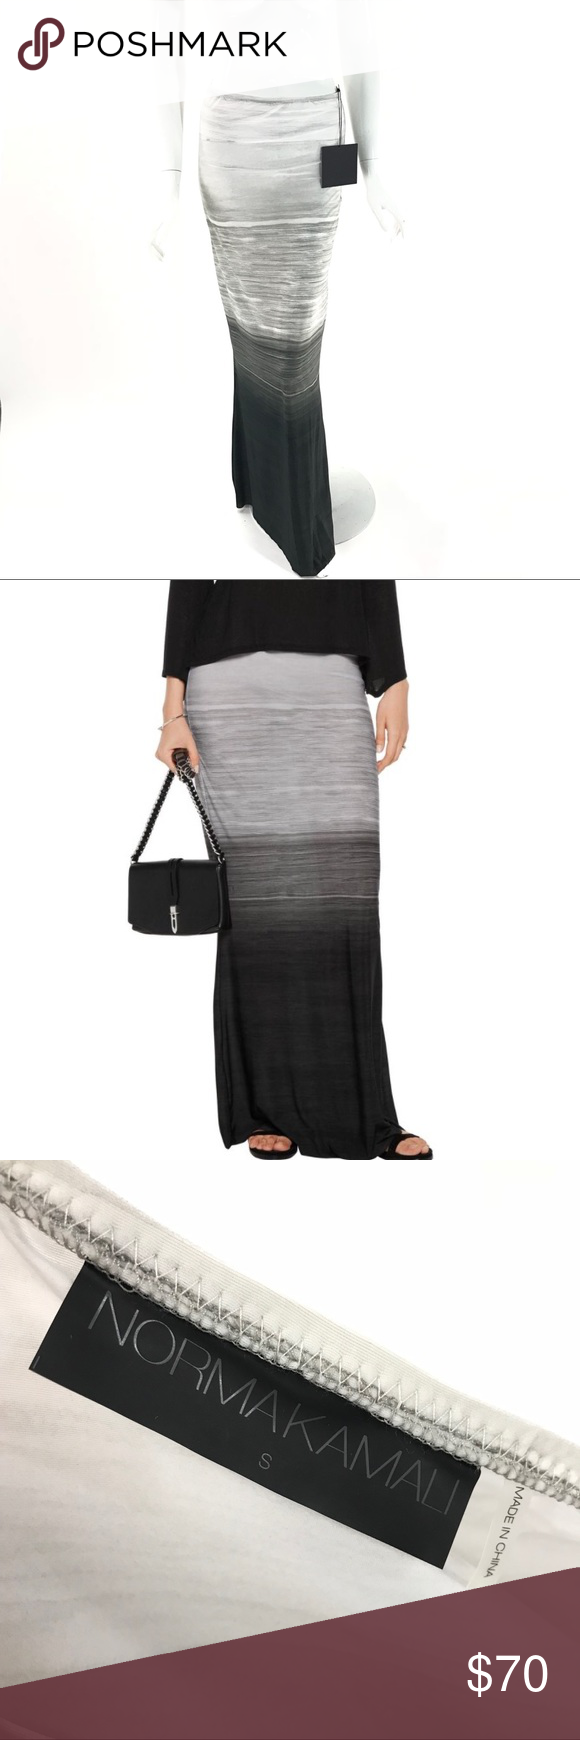 Buy Online New Norma Kamali Woman Obie Ombré Stretch-jersey Maxi Skirt Gray Size XS Norma Kamali Original Discount Price Buy Cheap Footaction Clearance Countdown Package UTEhhgN4Uy